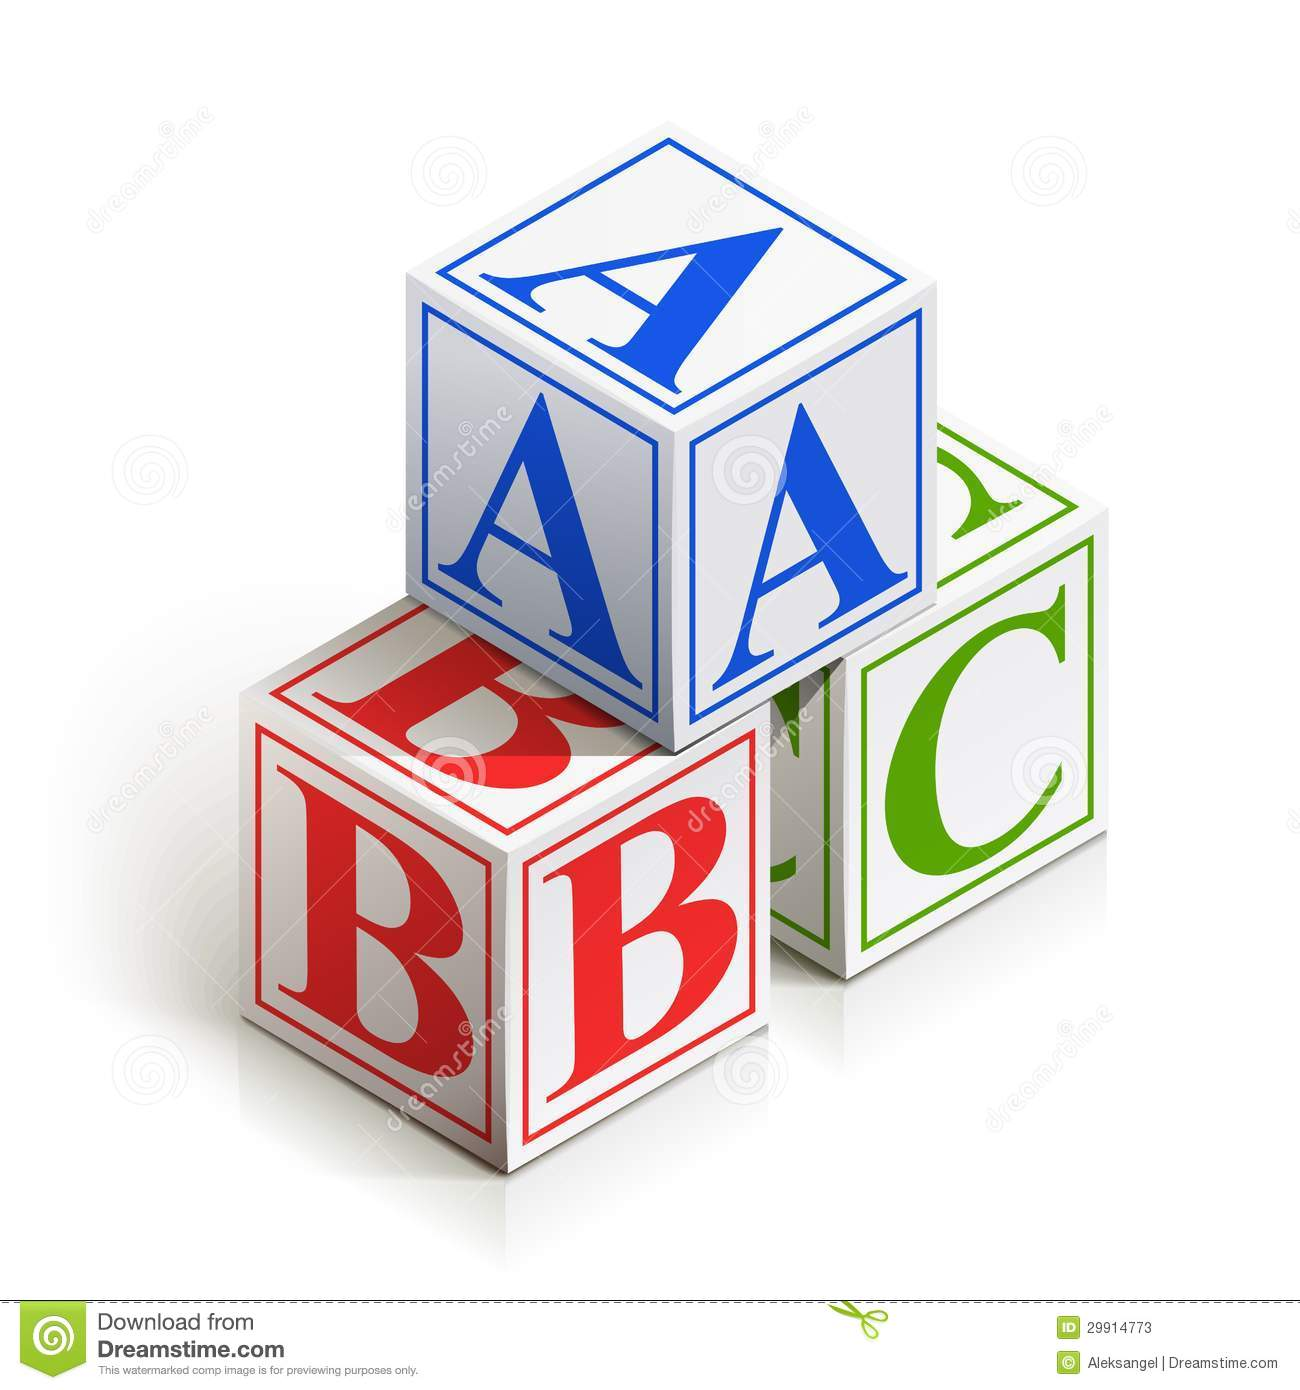 Abc Logo Transparent Brick abc